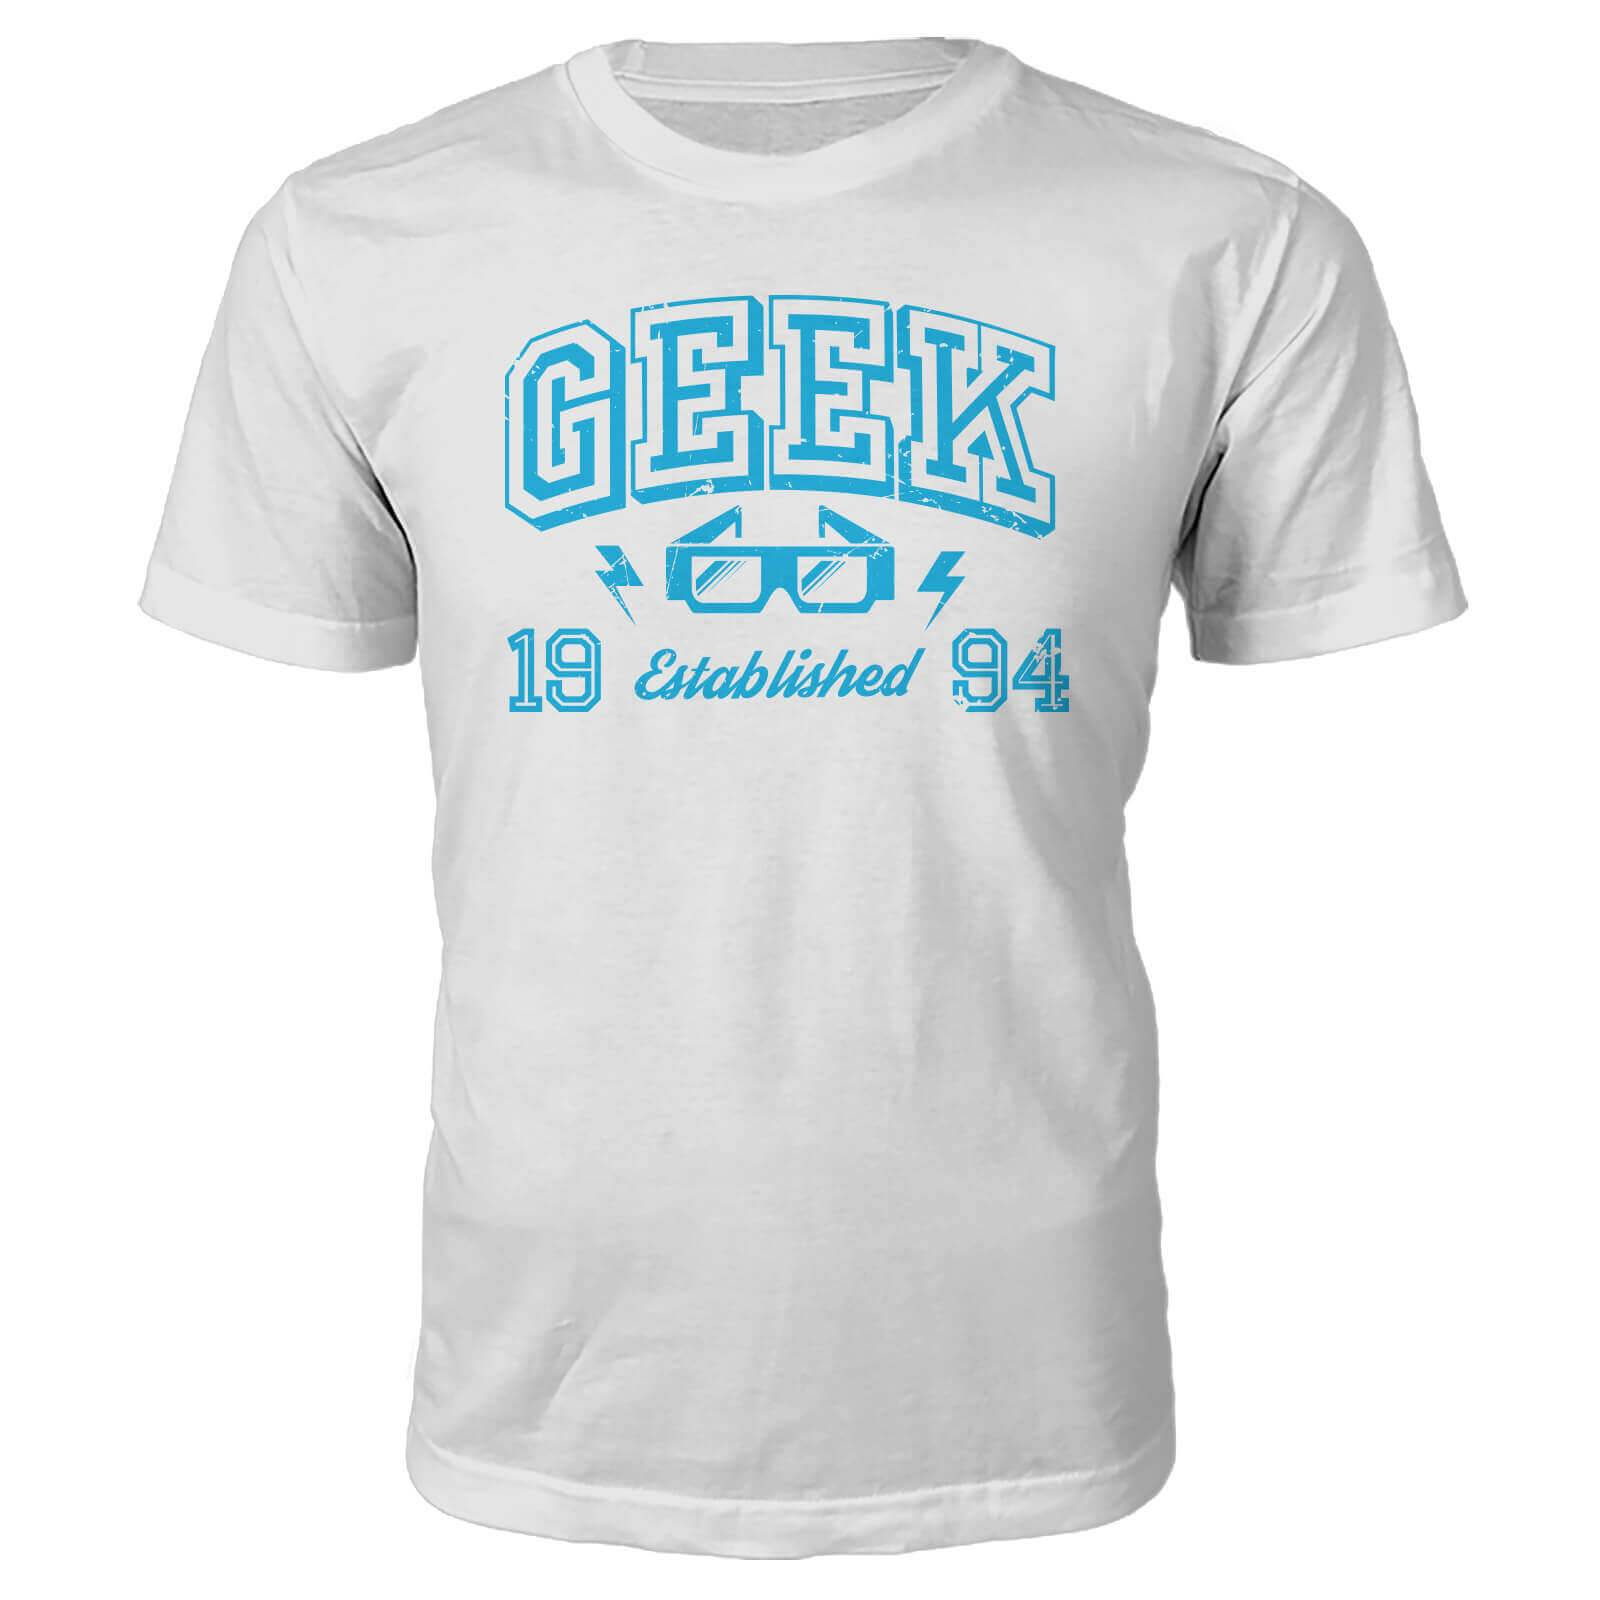 The Geek Collection Geek Established 1990's T-Shirt- White - M - 1994